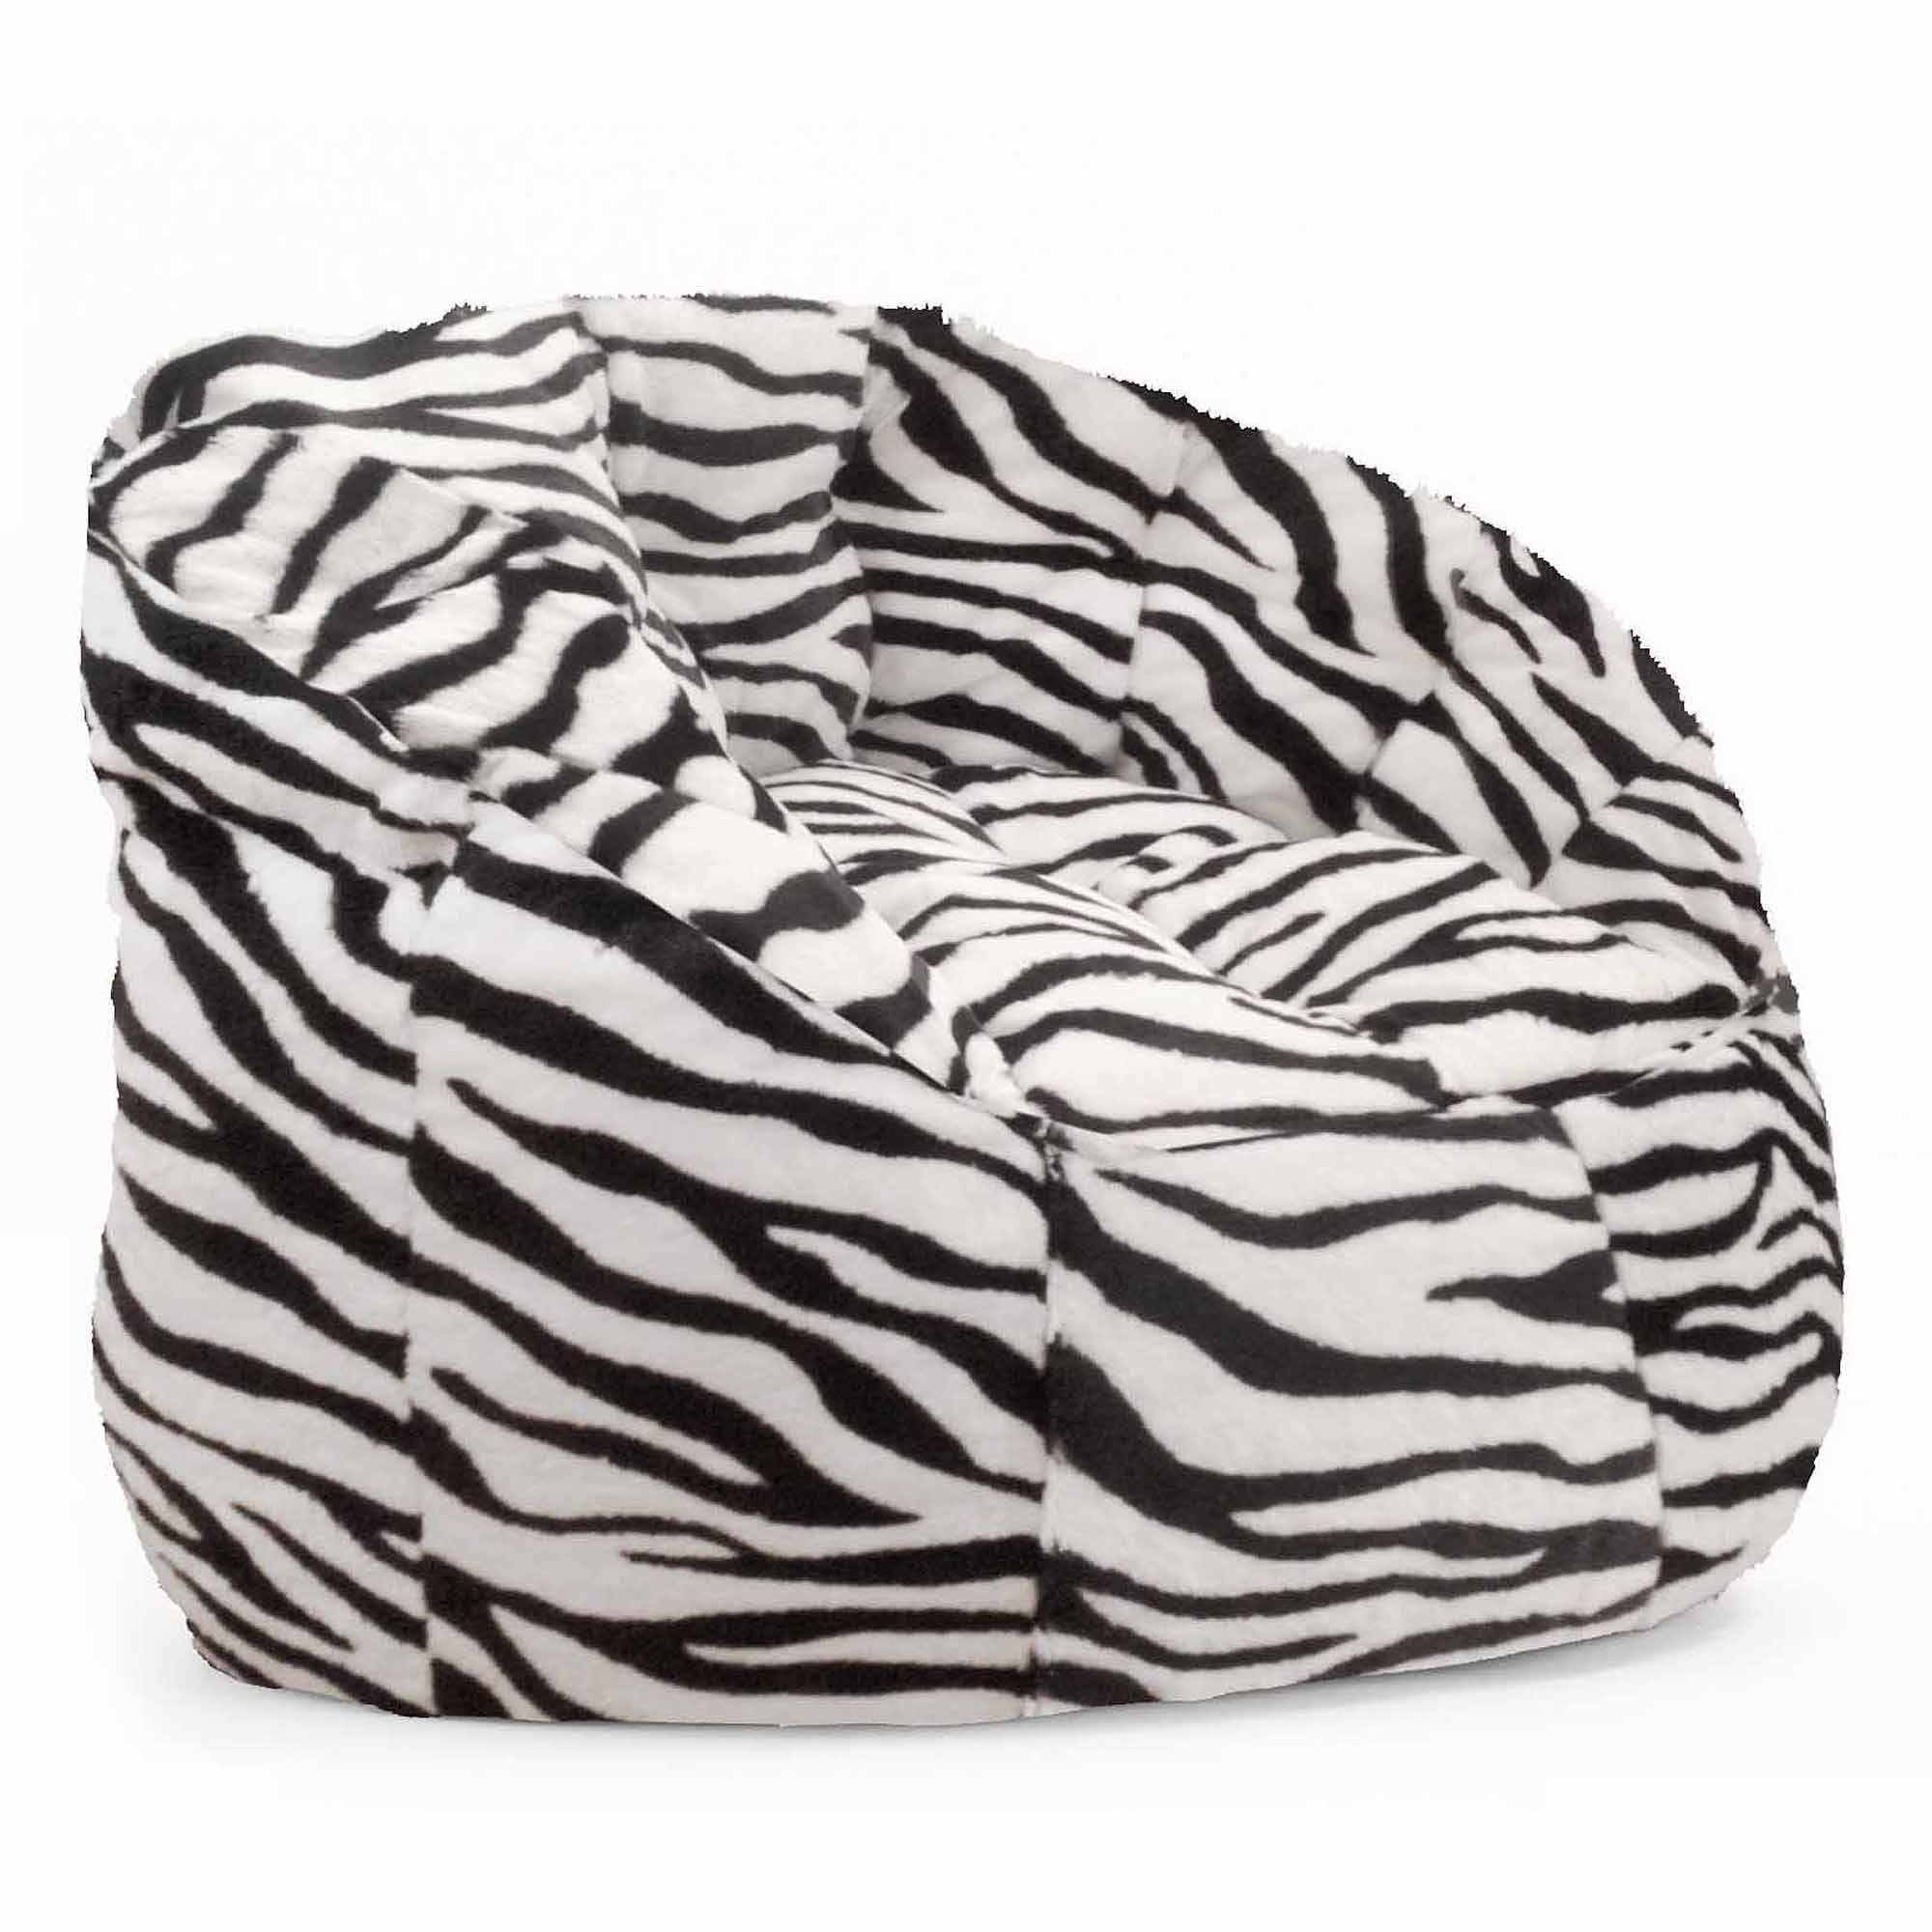 sc 1 st  Walmart & Cocoon Faux Fur Bean Bag Chair Multiple Colors - Walmart.com